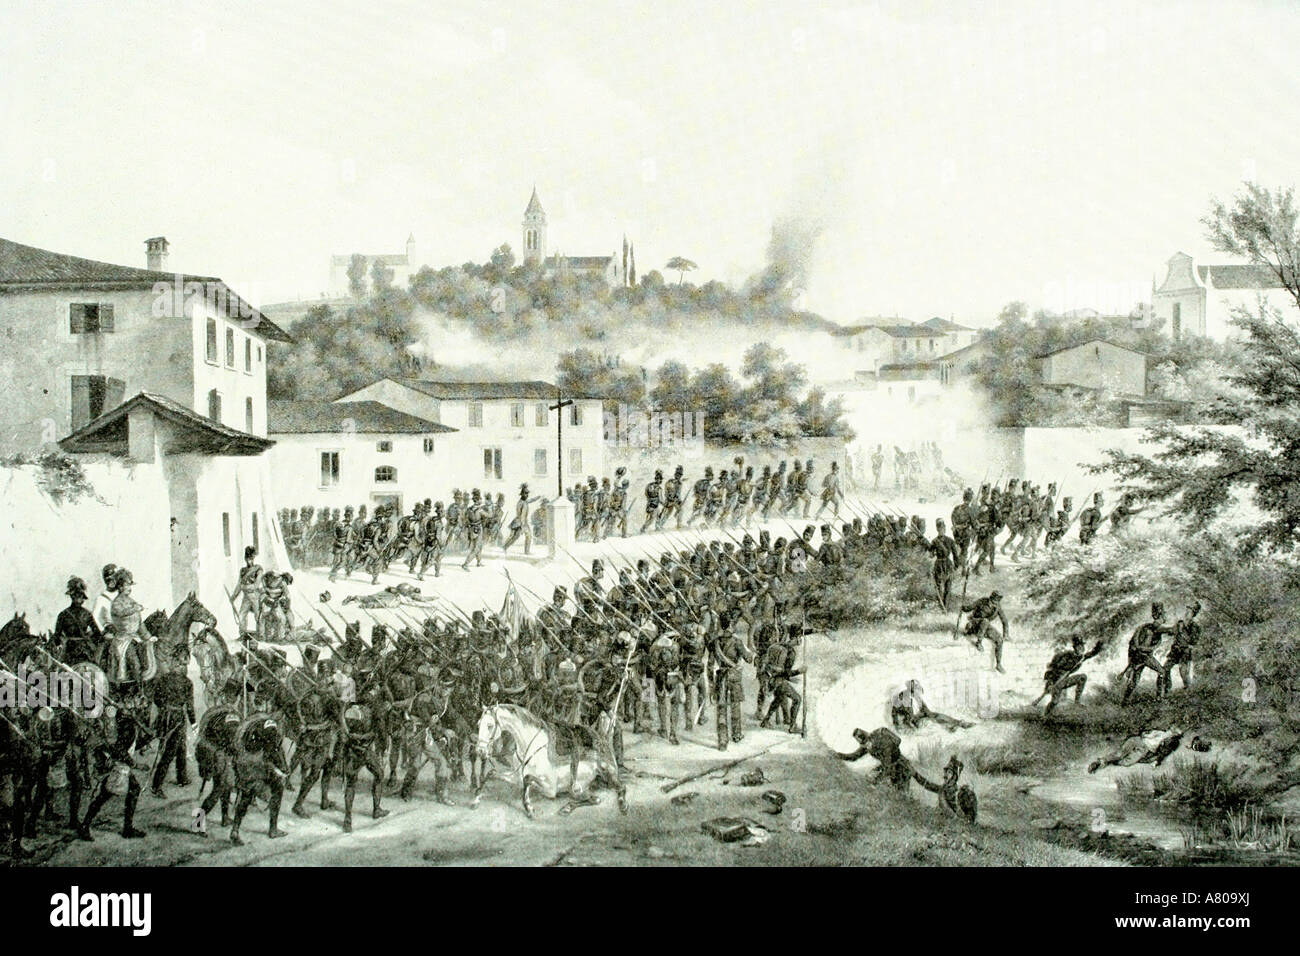 Austro-prussian war. 1866. Antique illustration. 1900 - Stock Image